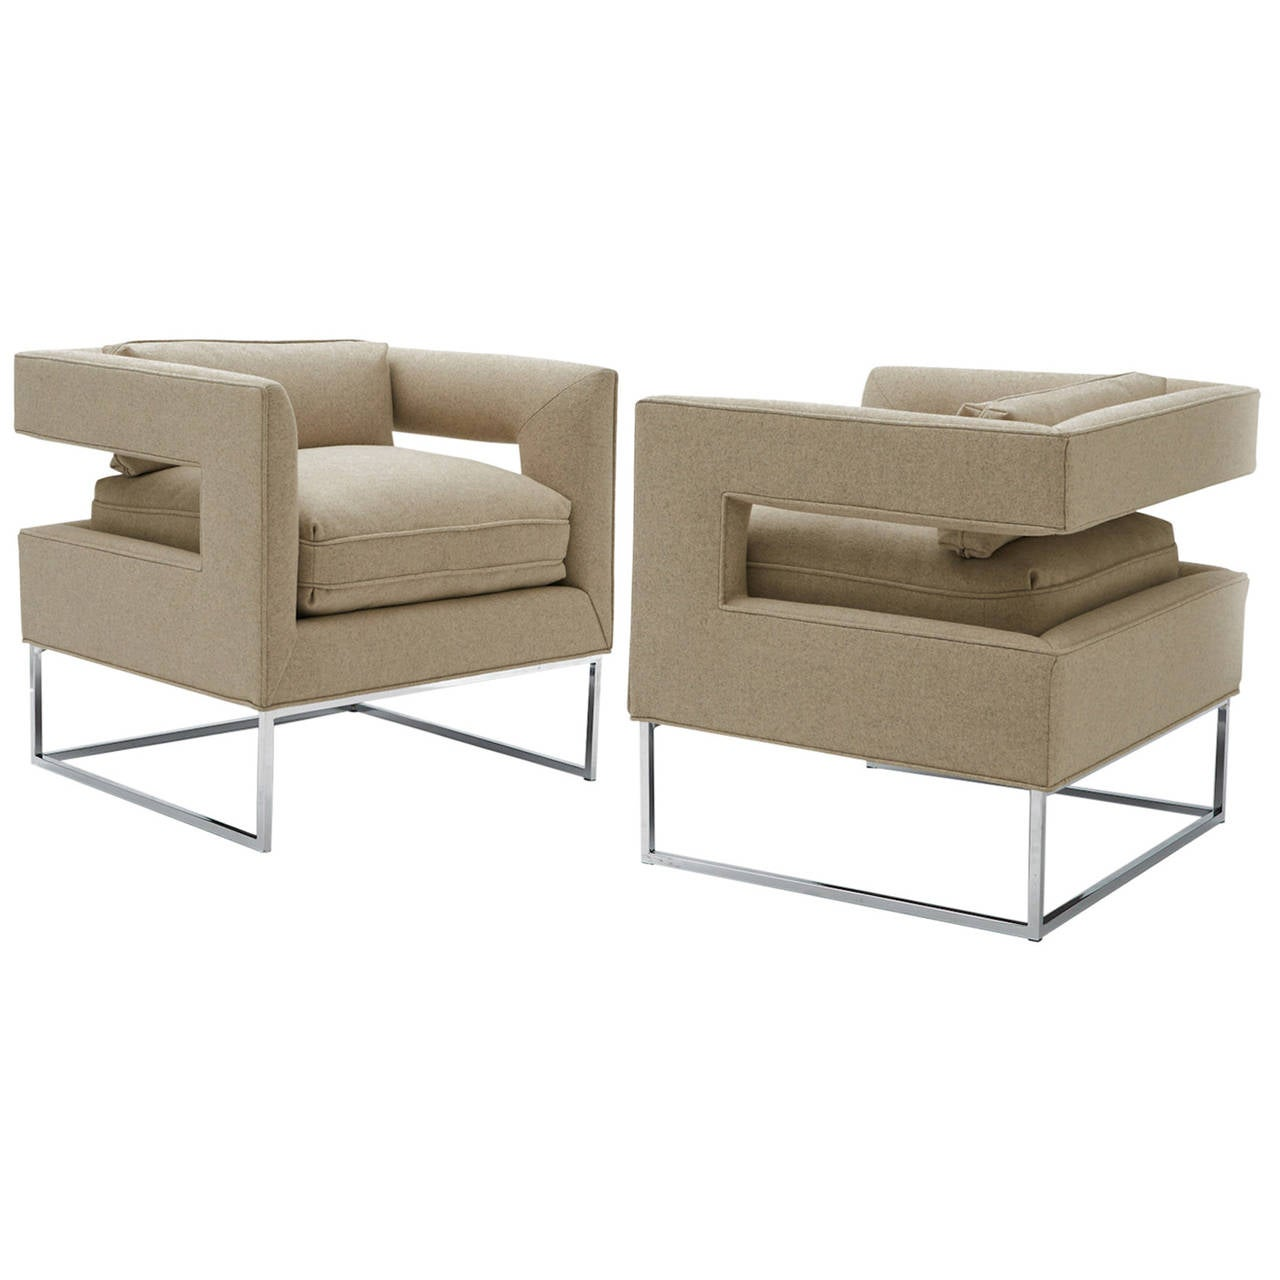 Milo Baughman, Cut-Out Lounge Chairs For Sale